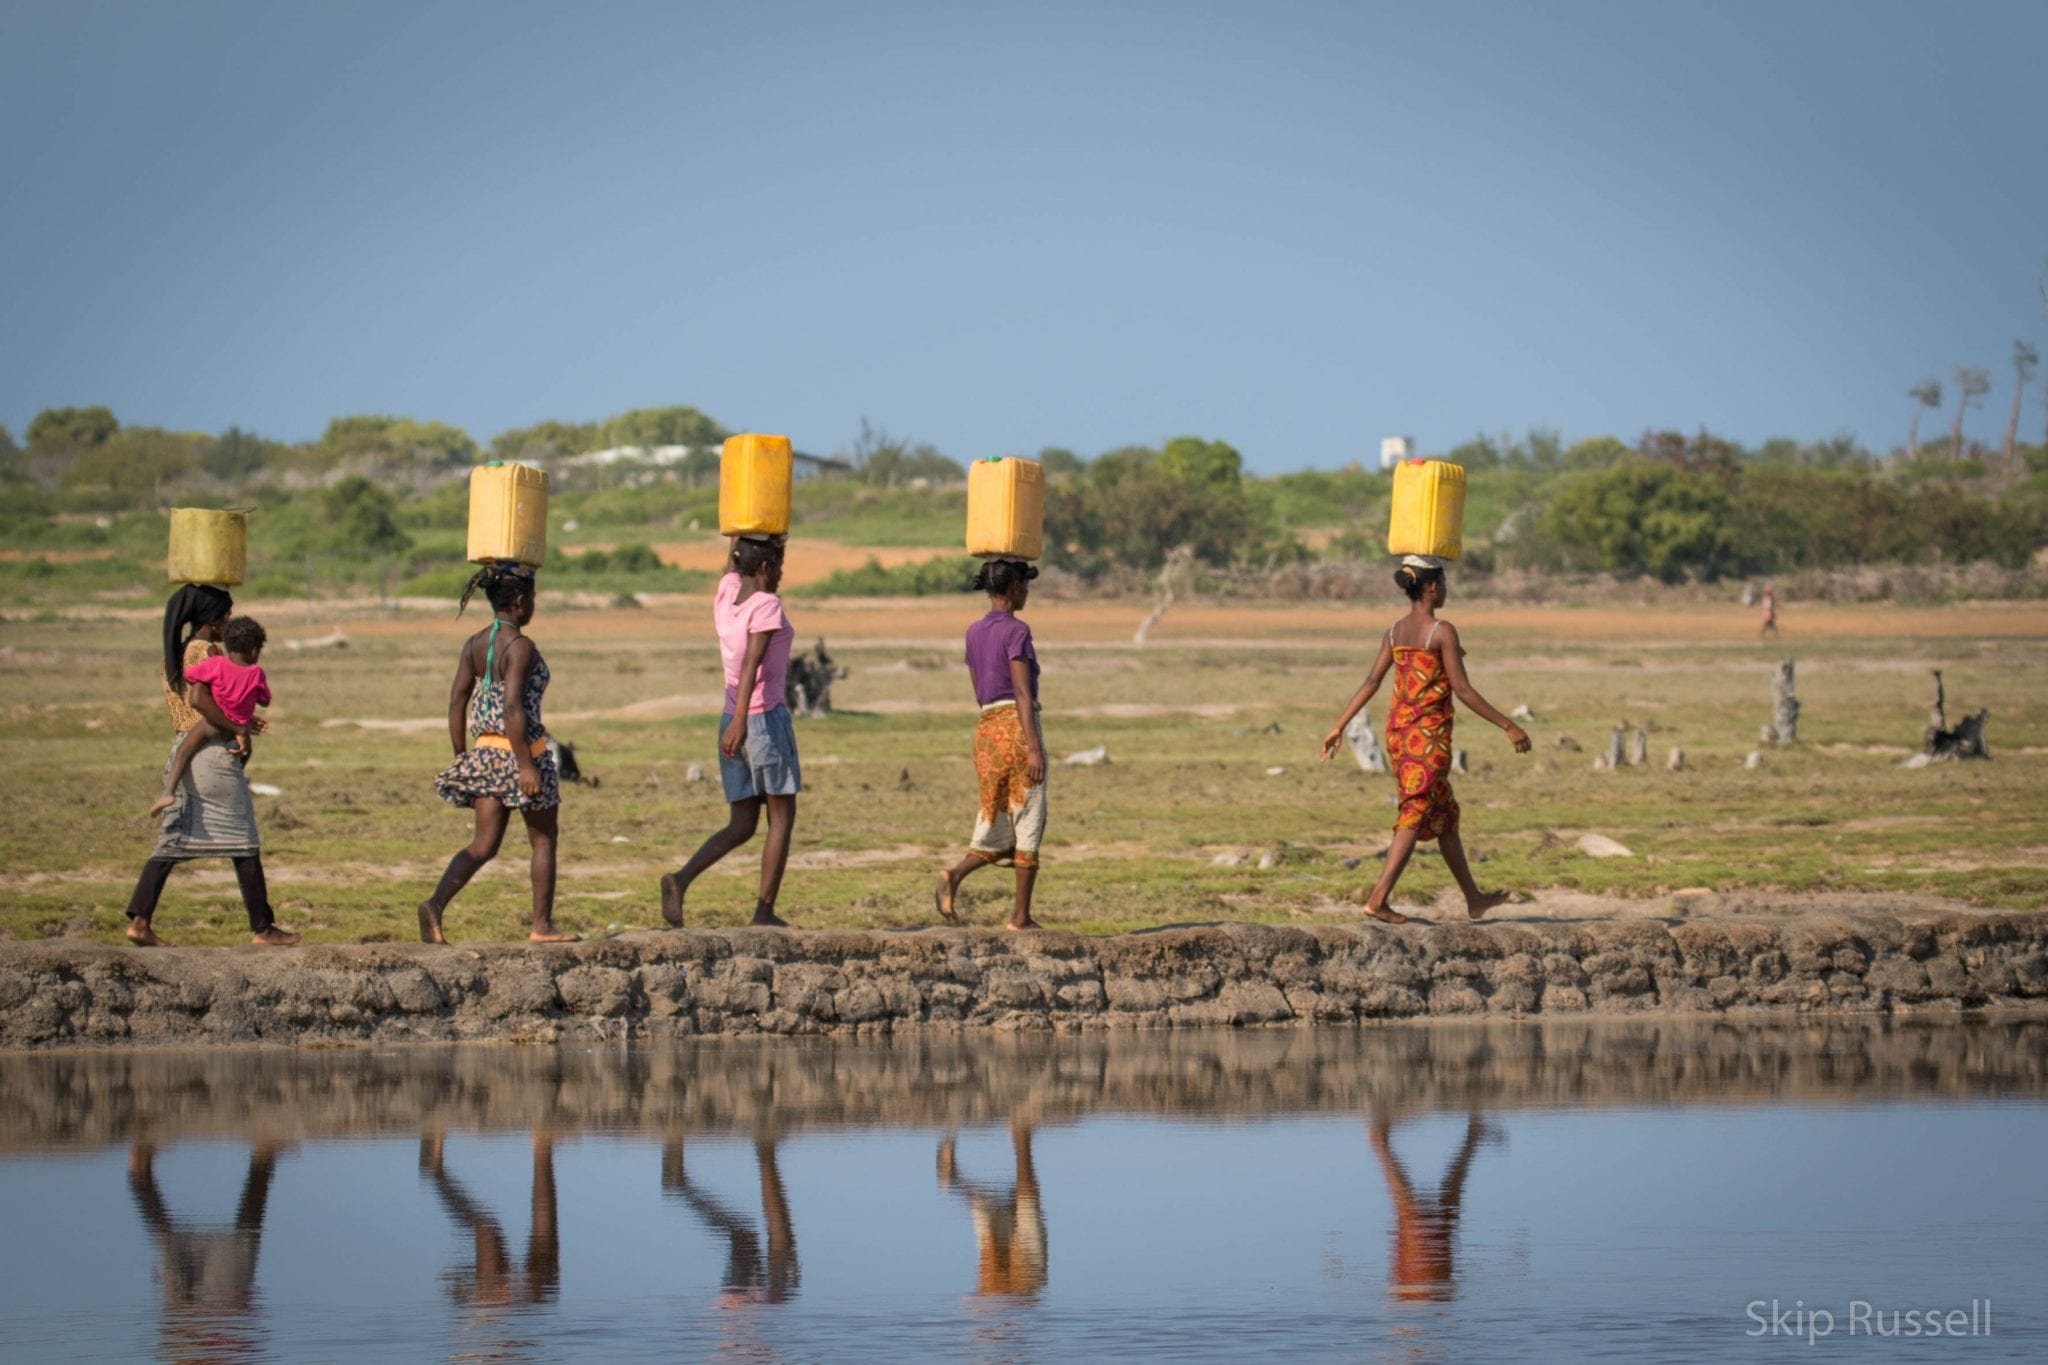 Reflections on a Review of Studies on the Physical and Emotional Toll of Carrying  Water | Engineering For Change